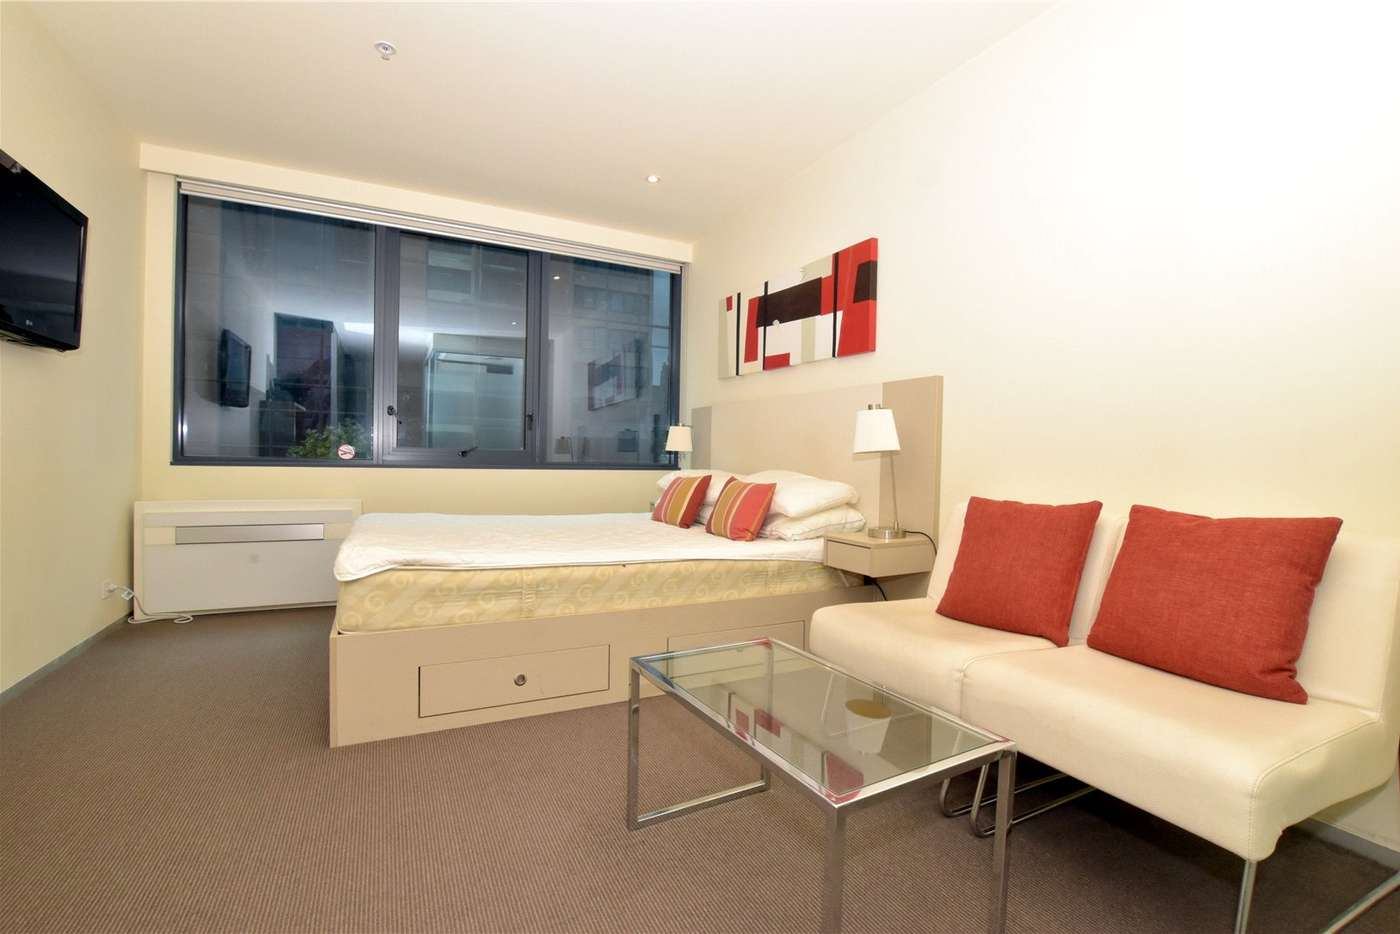 Main view of Homely studio listing, 501/181 ABeckett Street, Melbourne VIC 3000